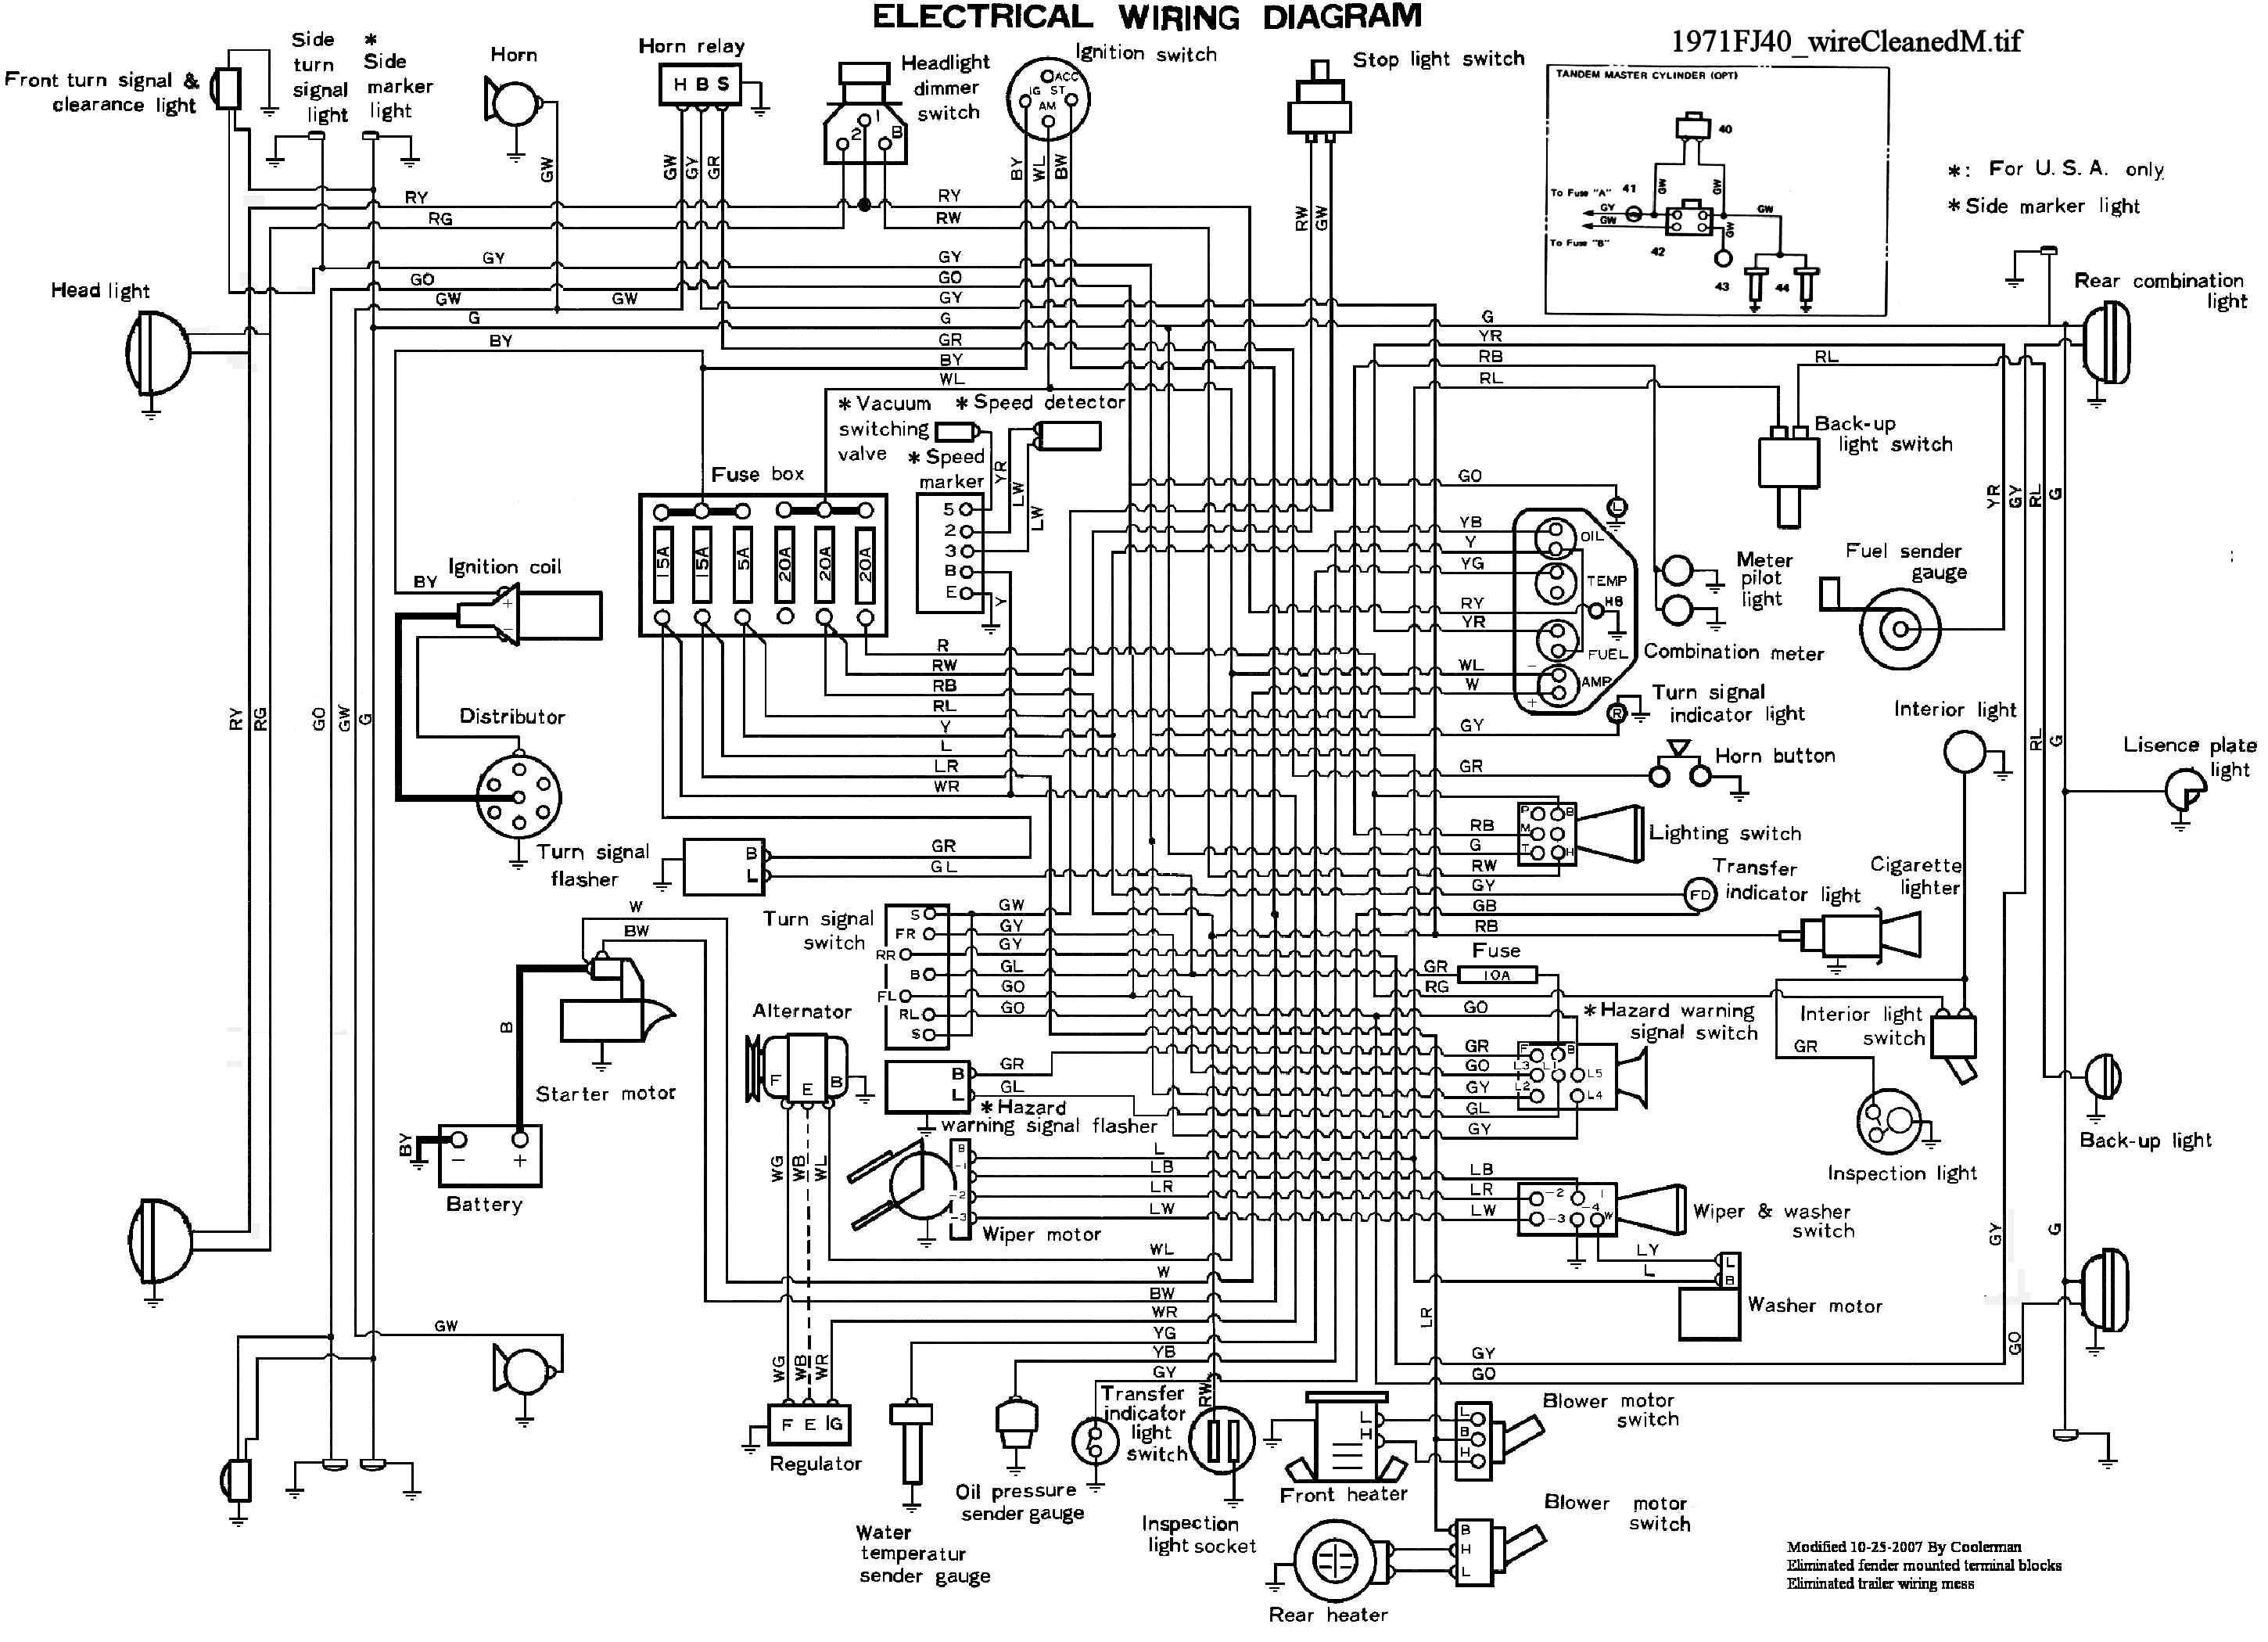 1971 Fj40 Wiring Diagram List Of Schematic Circuit Cadillac Headlights Cruiser Rh Globalsoftware Inc Com Toyota Land